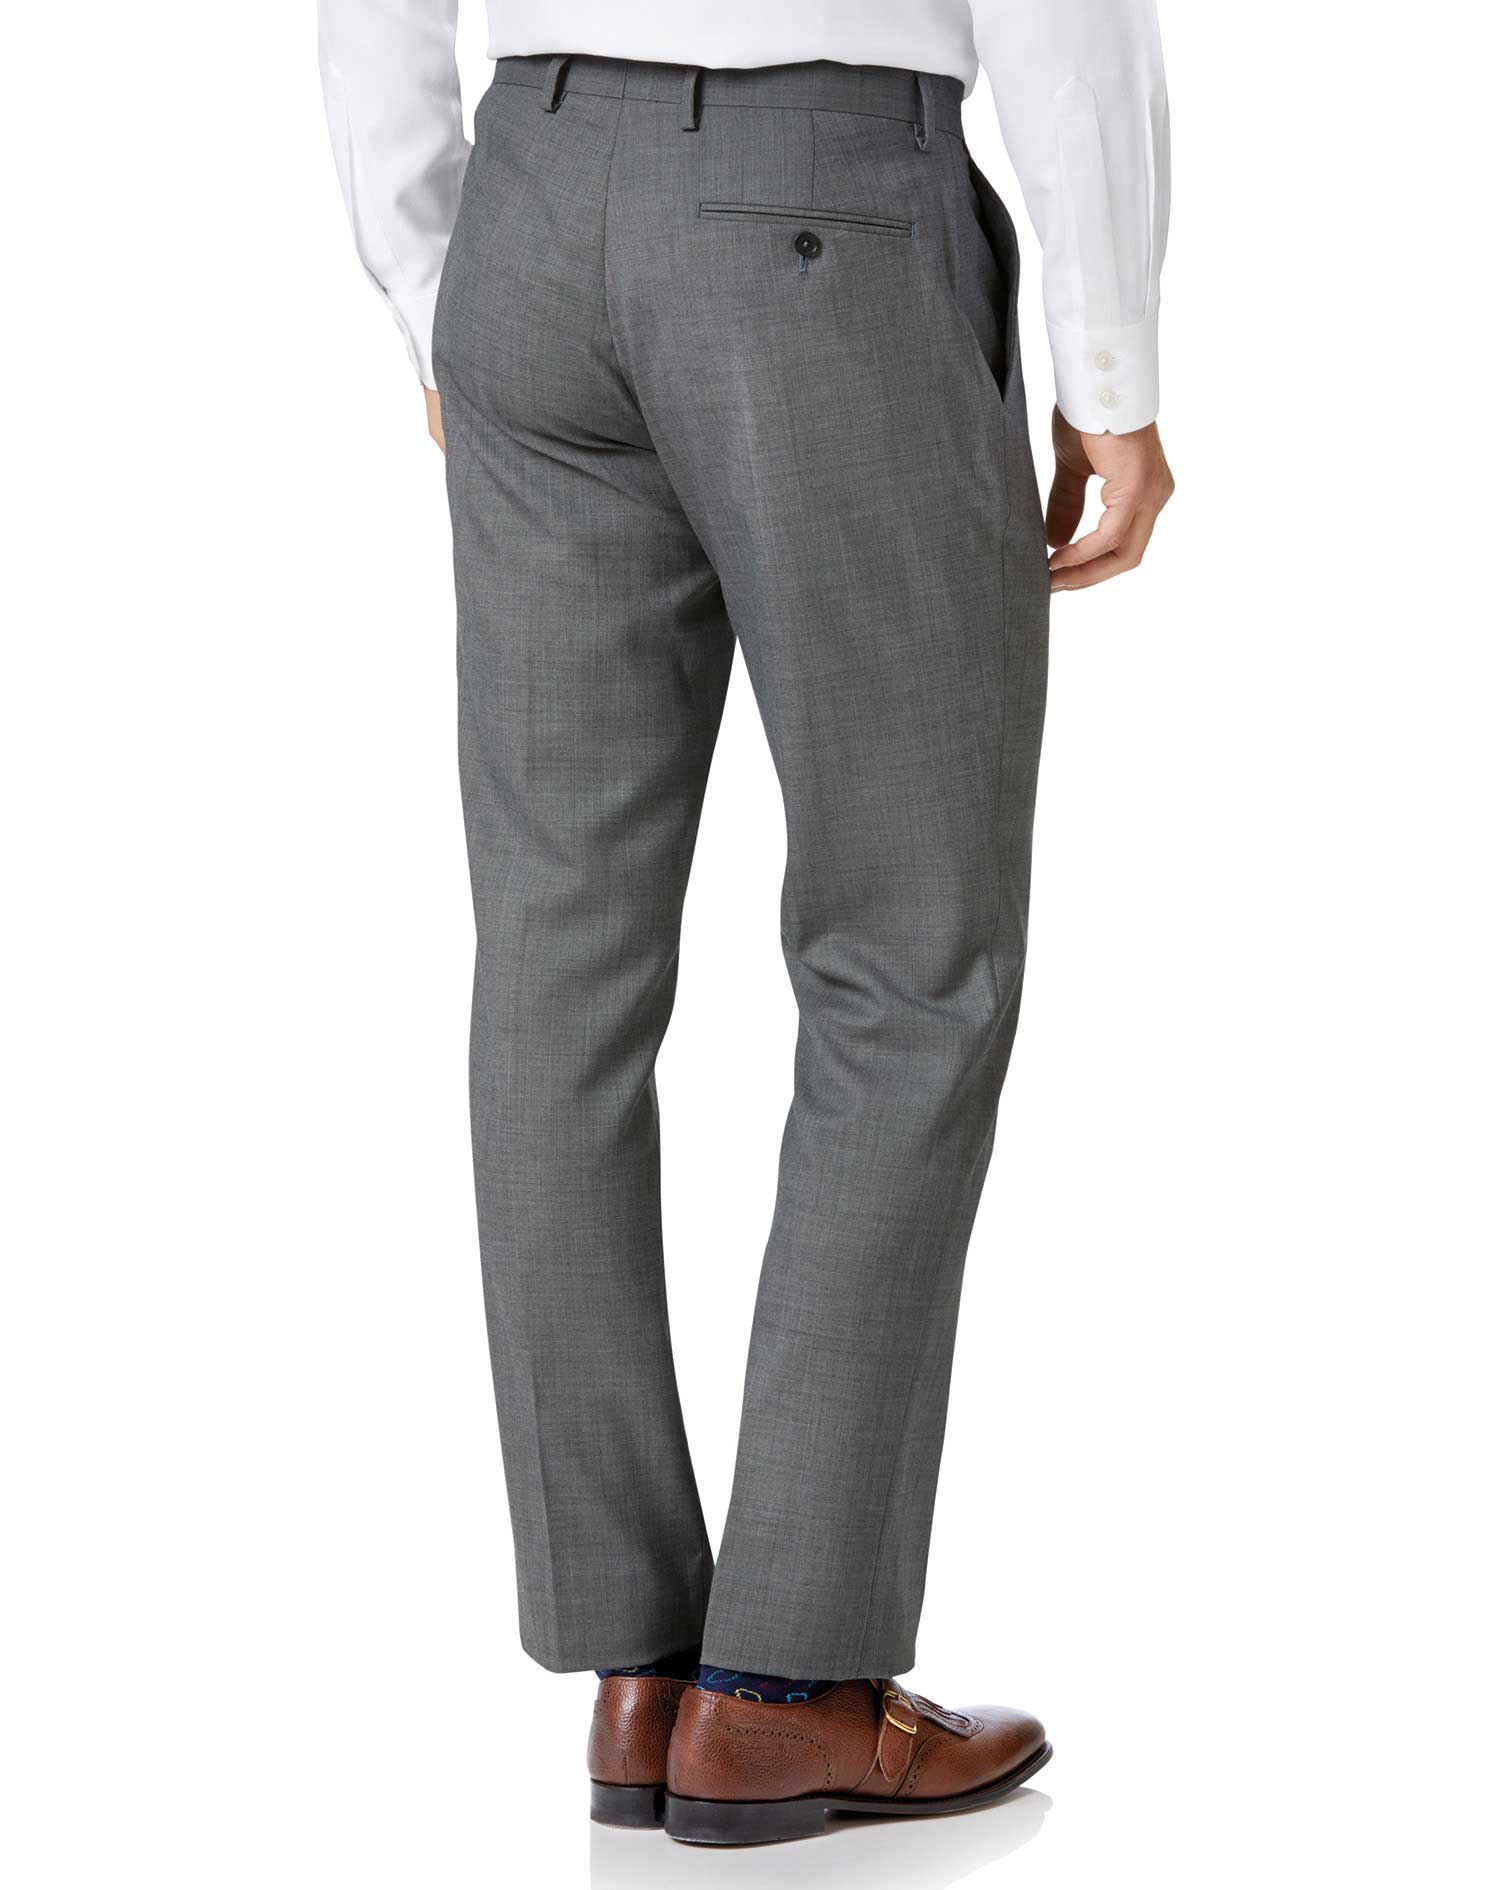 Light grey slim fit sharkskin travel suit pants